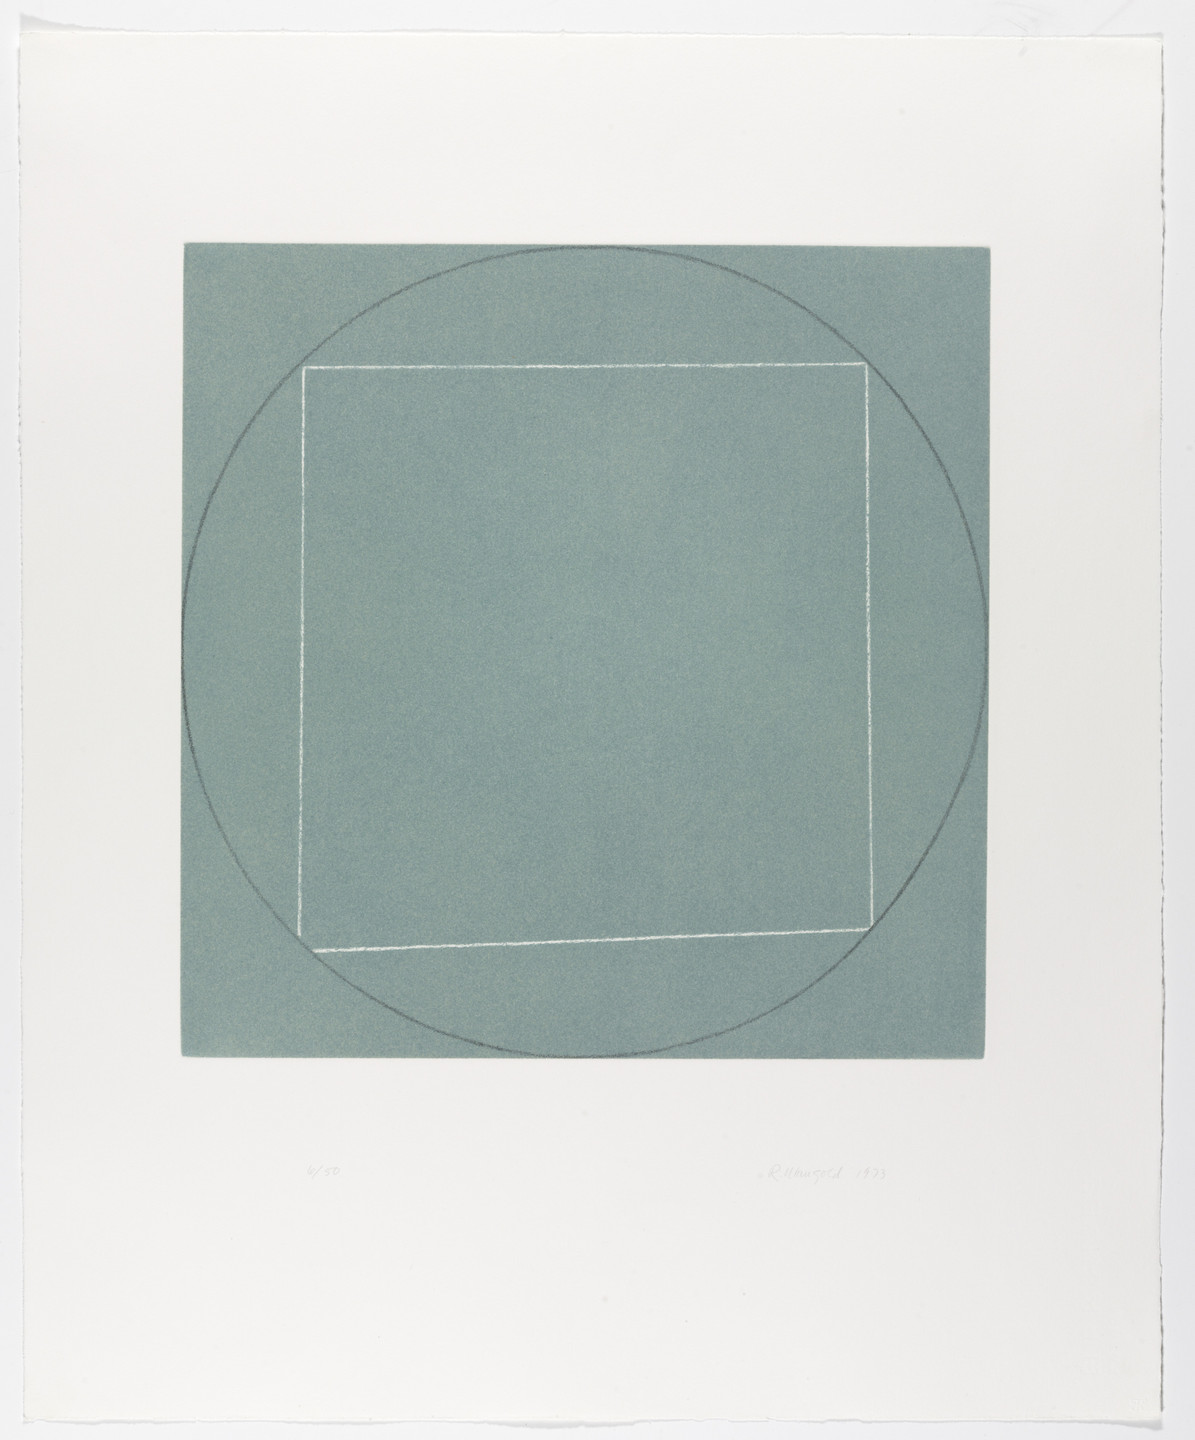 Robert Mangold. Seven Aquatints. 1973 (published 1974)